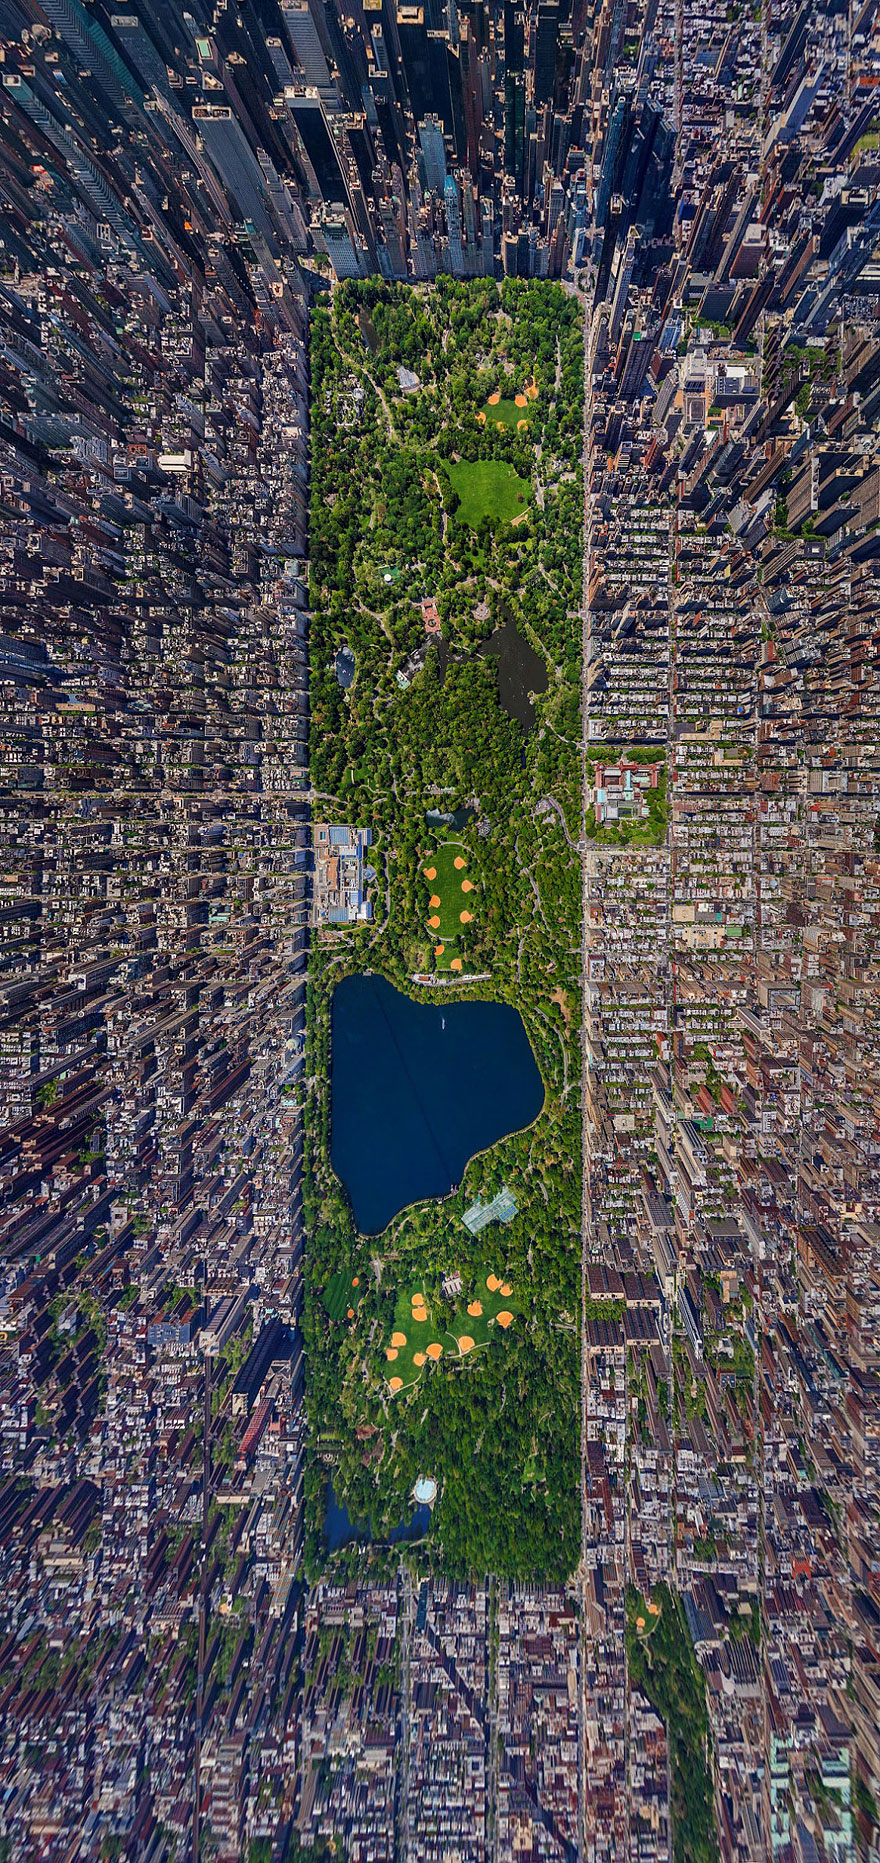 Central Park - bird's-eye view